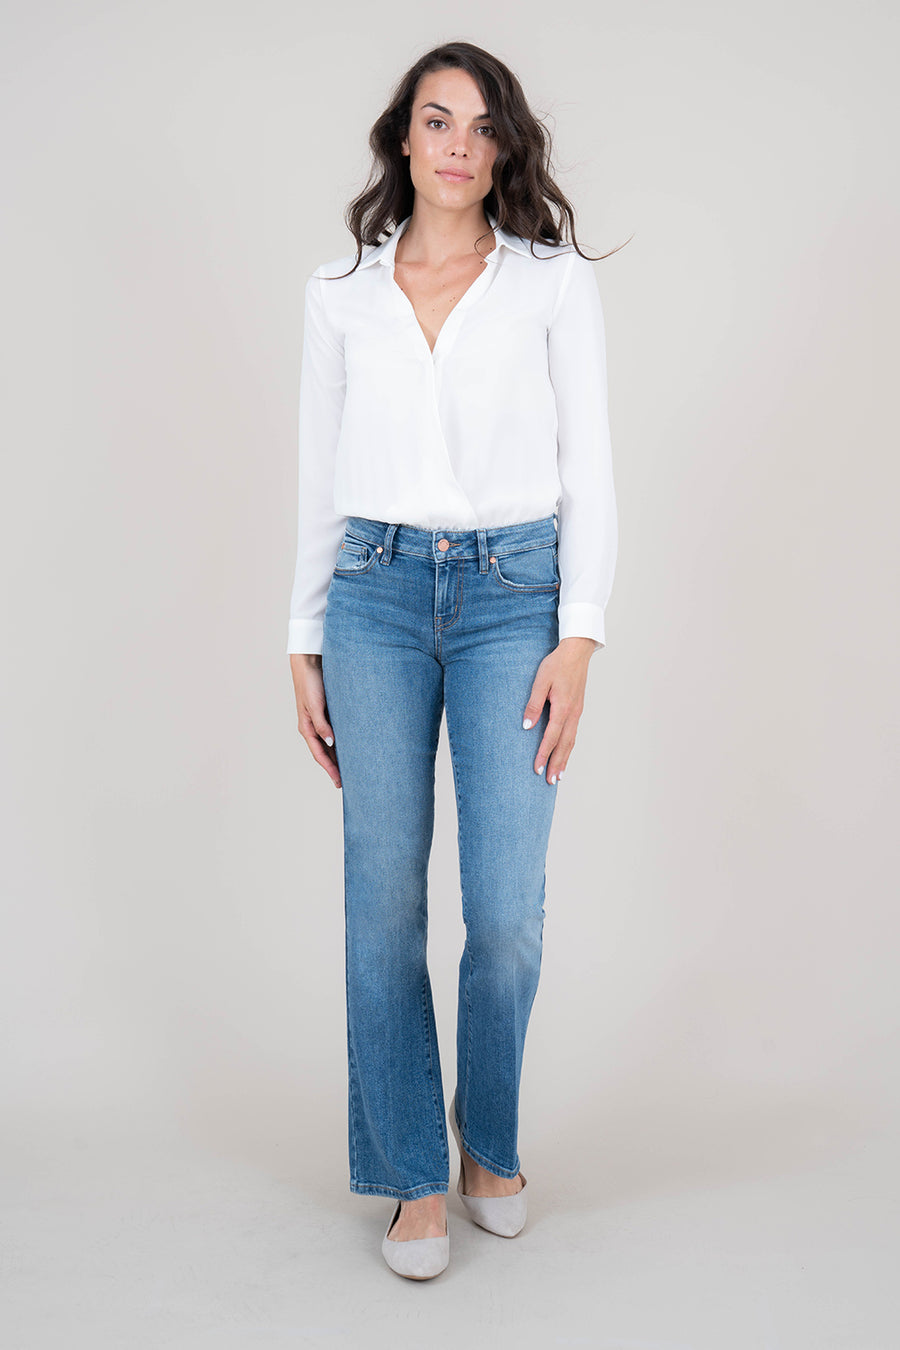 Chloe Bootcut - level99jeans